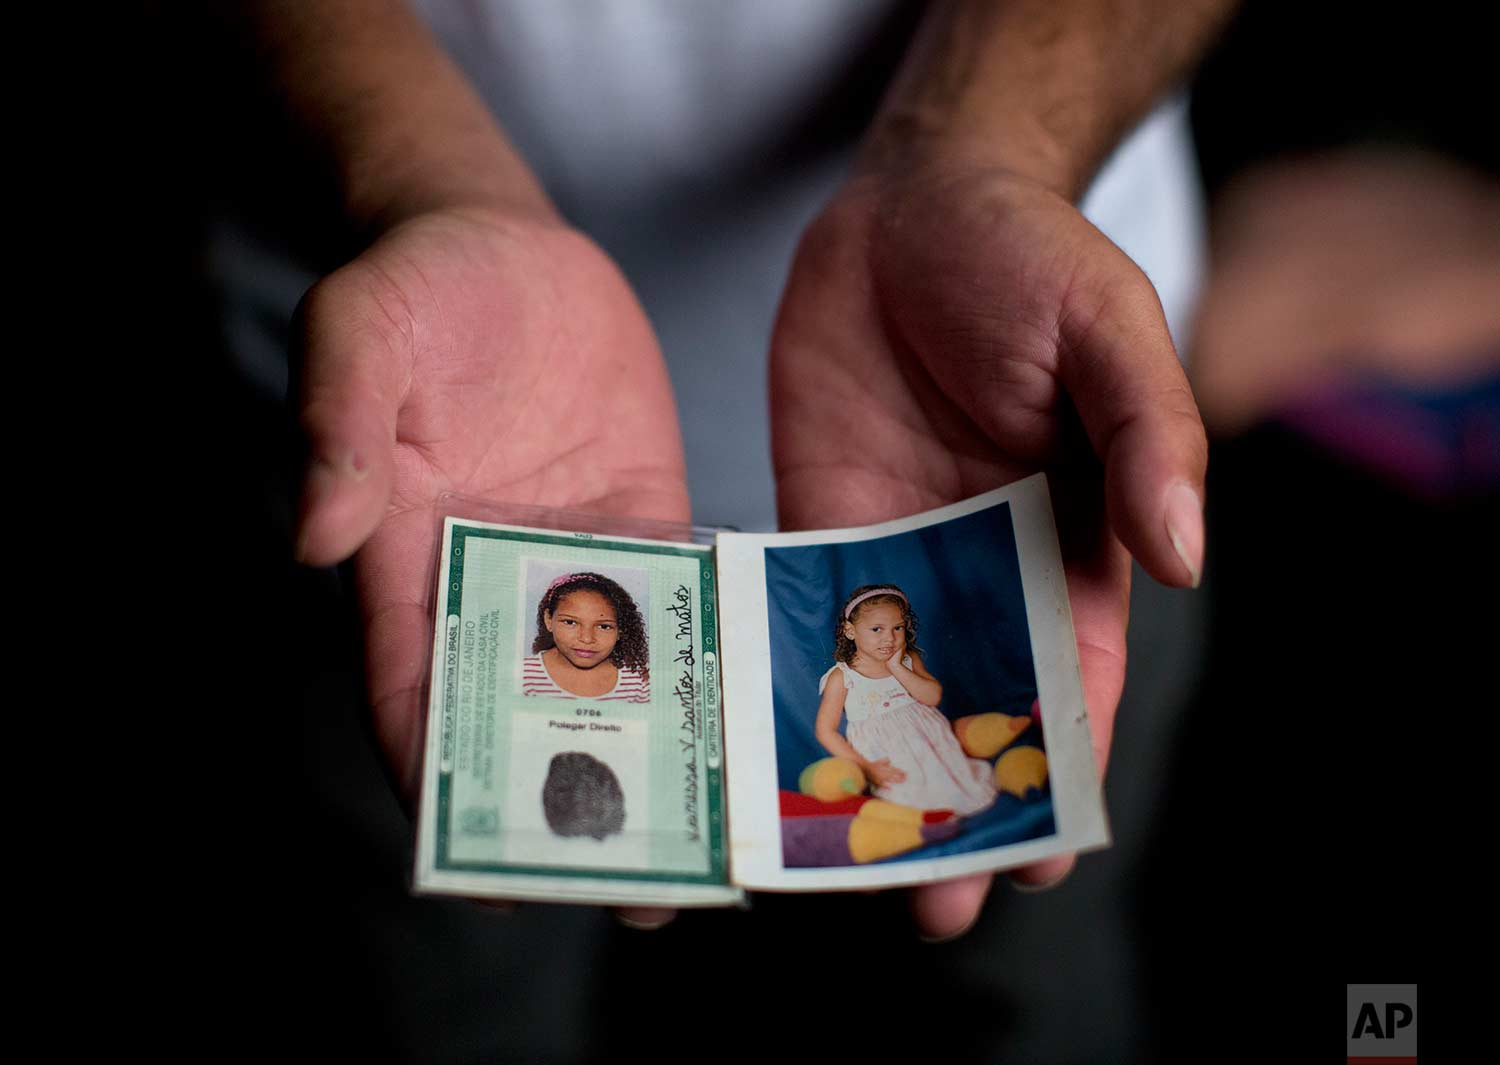 "In this July 25, 2017 photo, Leandro Monteiro de Matos holds a photo and school identification of his slain daughter Vanessa, in Rio de Janeiro, Brazil. On July 4, a group of police officers on patrol barged into the home of 10-year-old Vanessa dos Santos in the ""pacified"" Lins complex of slums. Allegedly they were searching for a suspect, but only the girl was inside. (AP Photo/Silvia Izquierdo)"